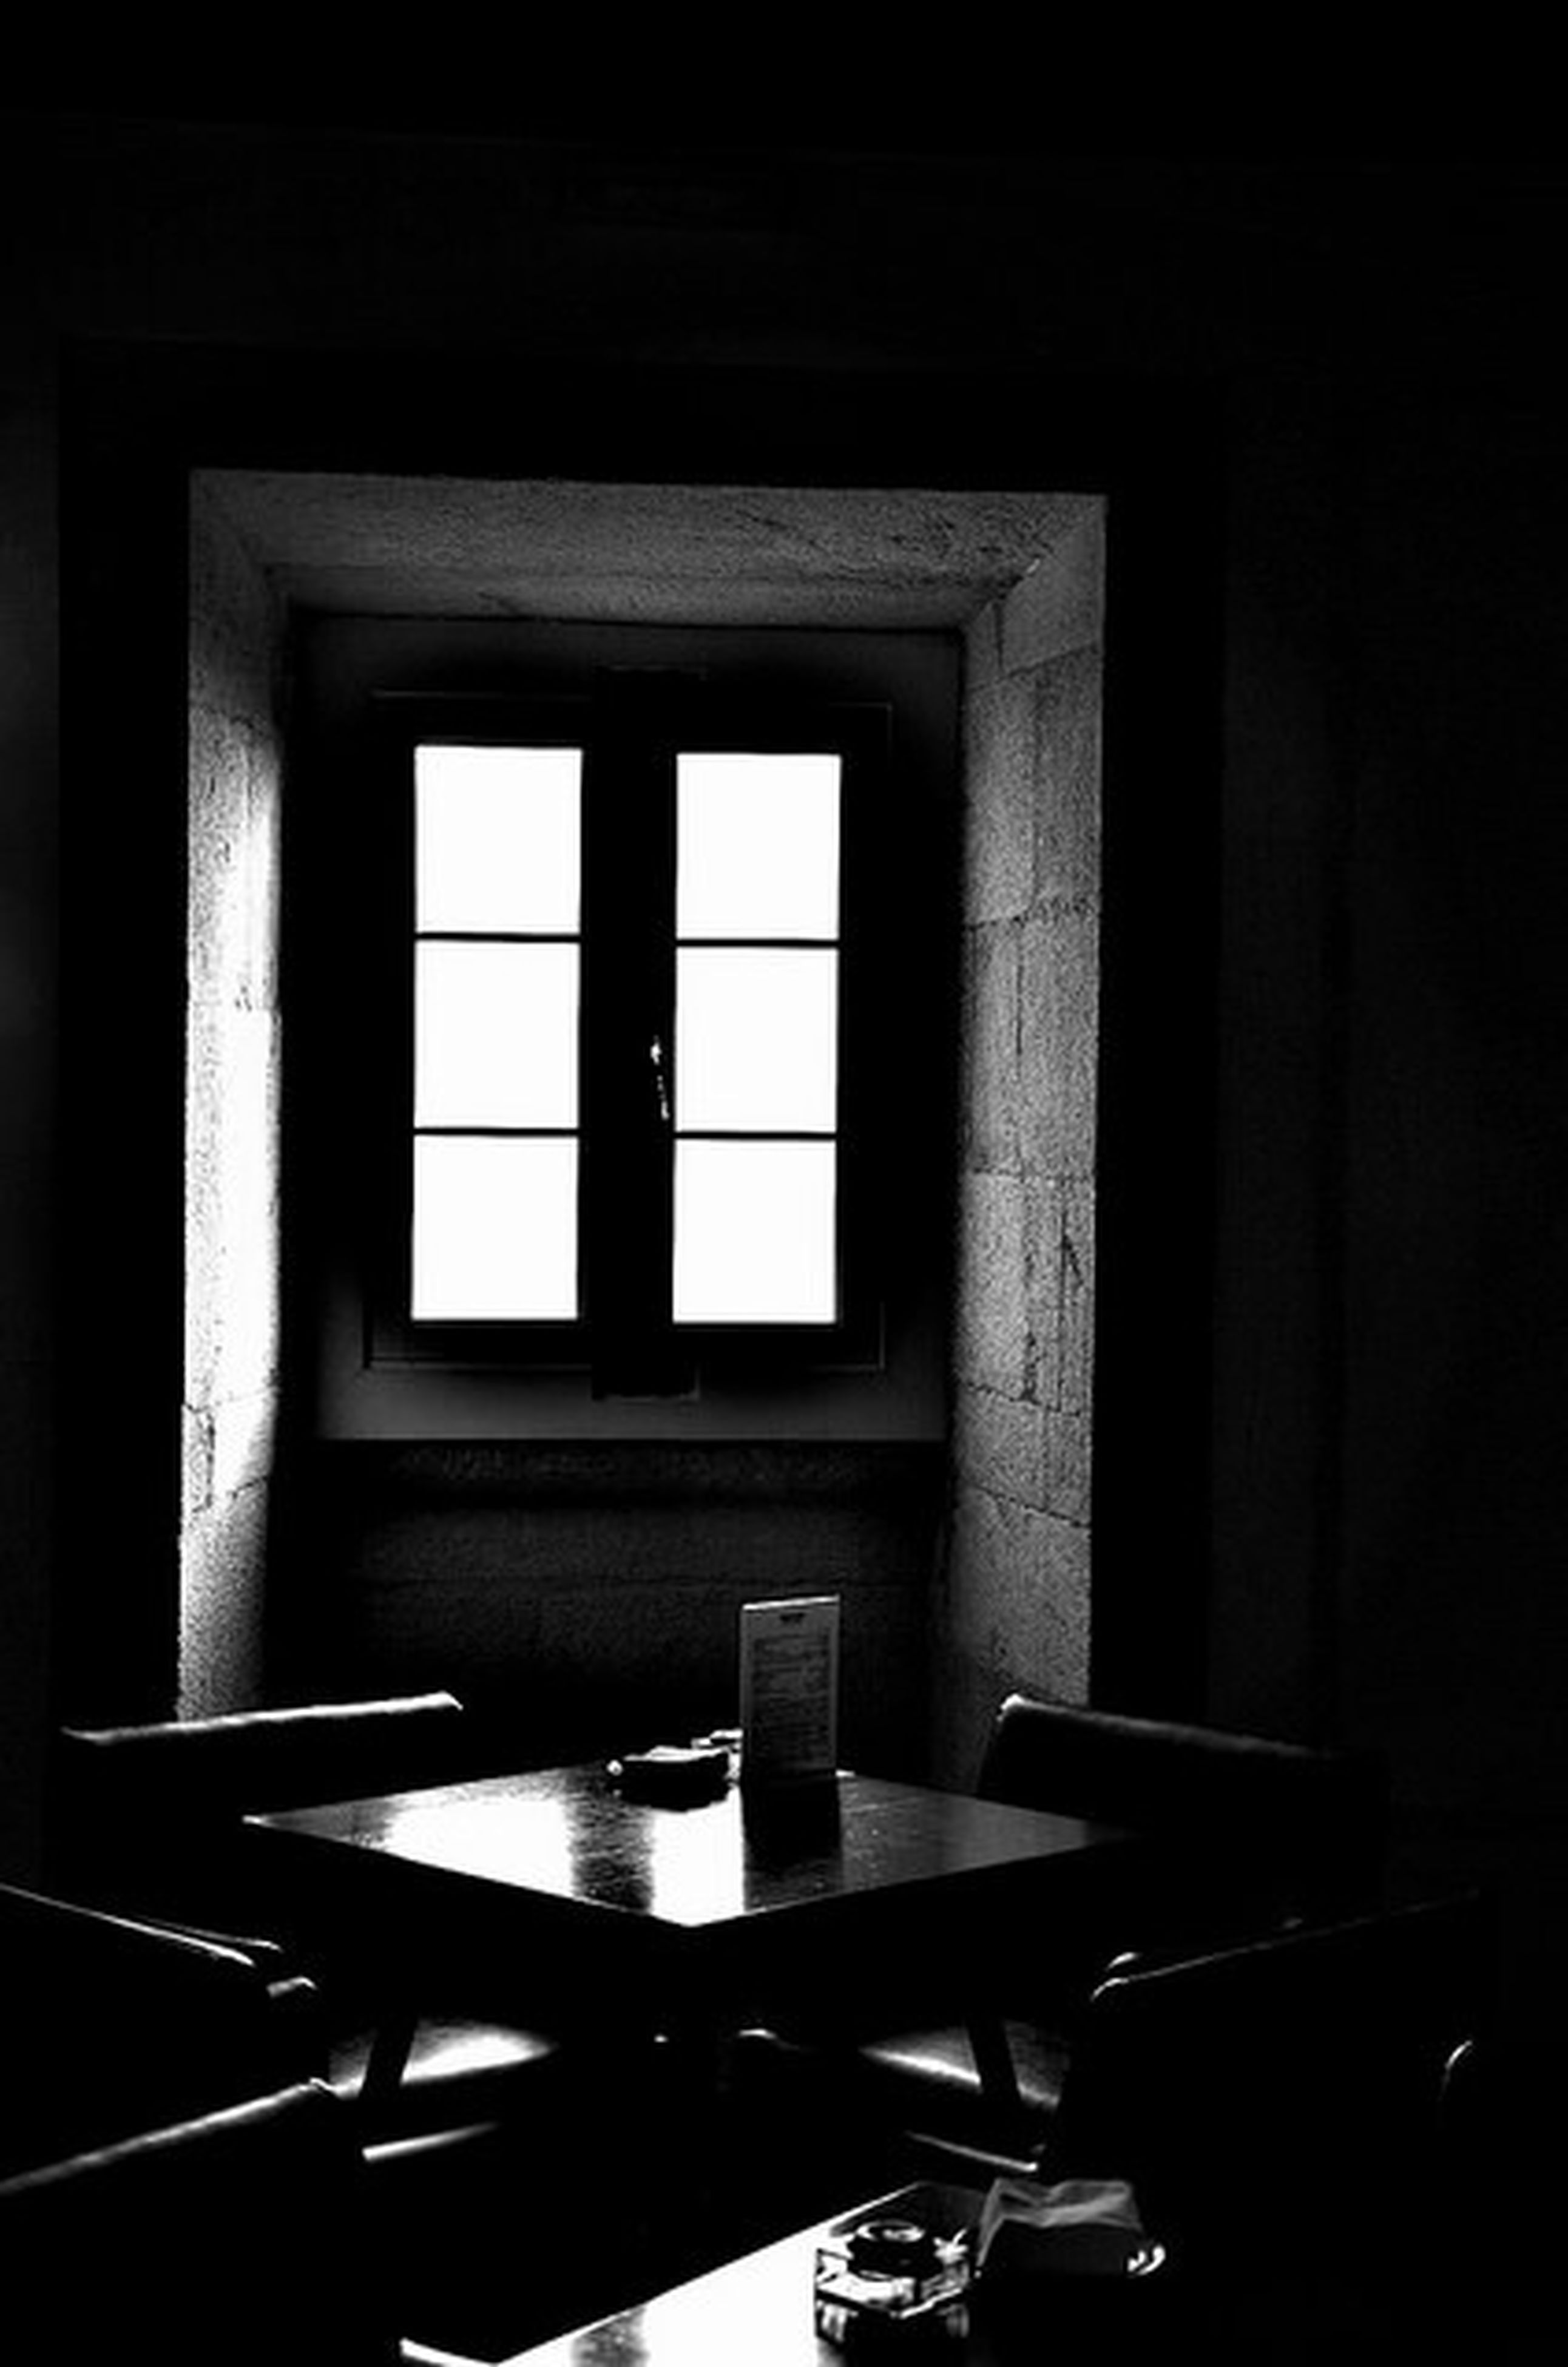 indoors, window, table, chair, home interior, glass - material, absence, architecture, no people, empty, built structure, still life, transparent, day, house, restaurant, wall, sunlight, glass, dark